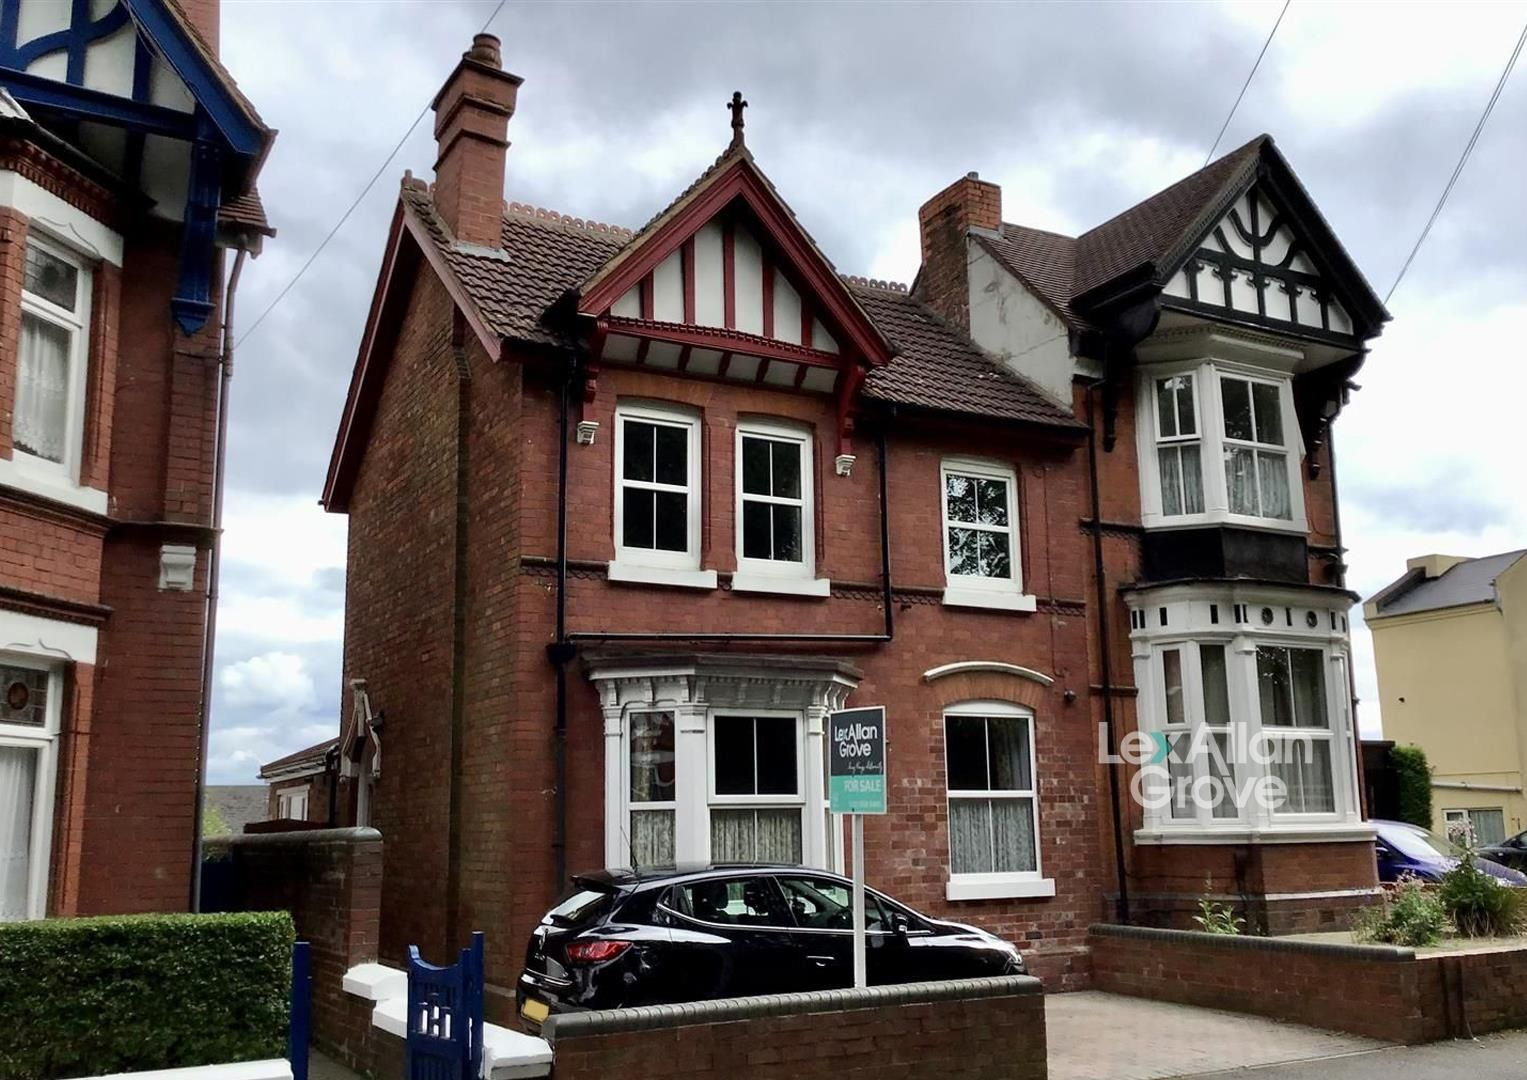 3 bed semi-detached for sale, DY2